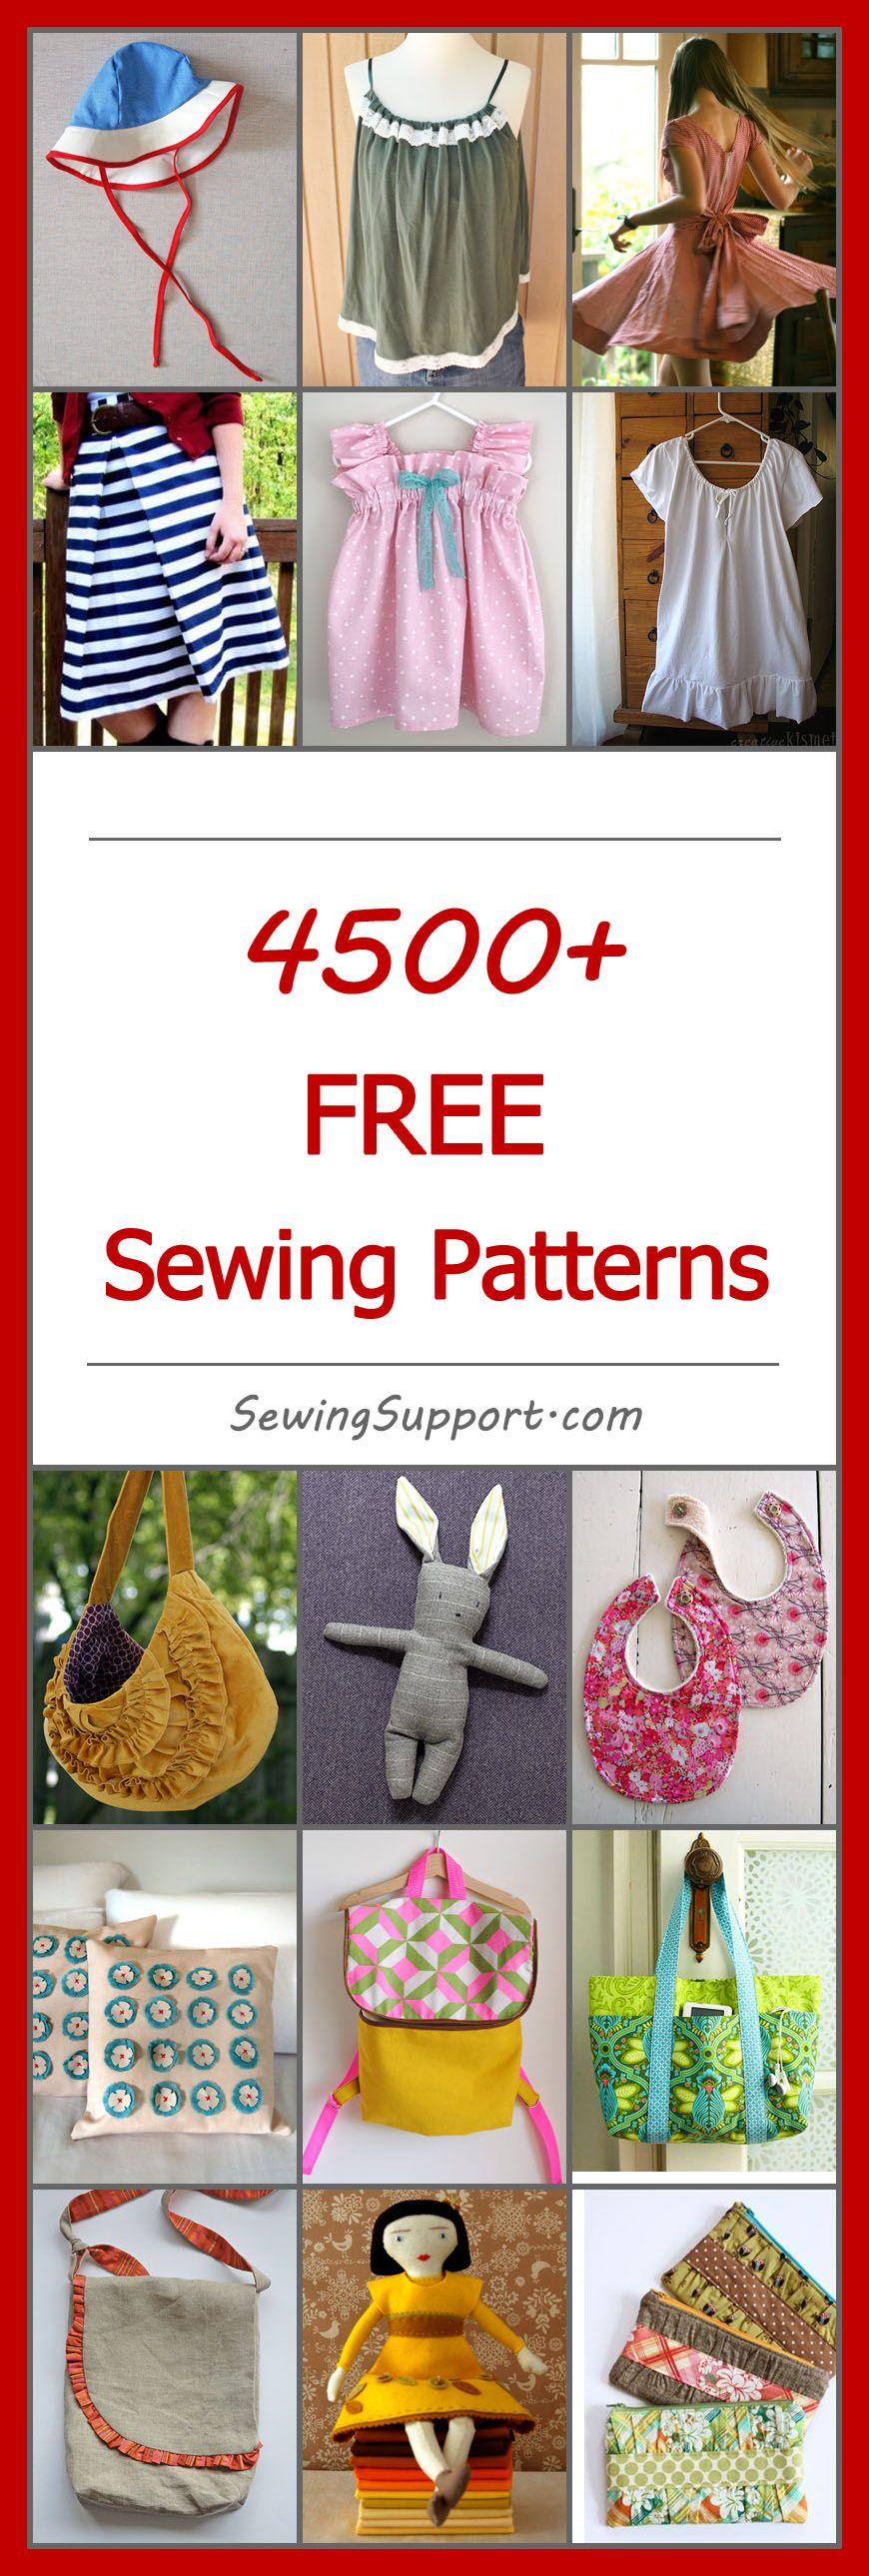 4500 free sewing patterns easy sewing projects and sewing patterns categorized for easy browsing no registration required baby knitting patternssewing patterns free jeuxipadfo Gallery